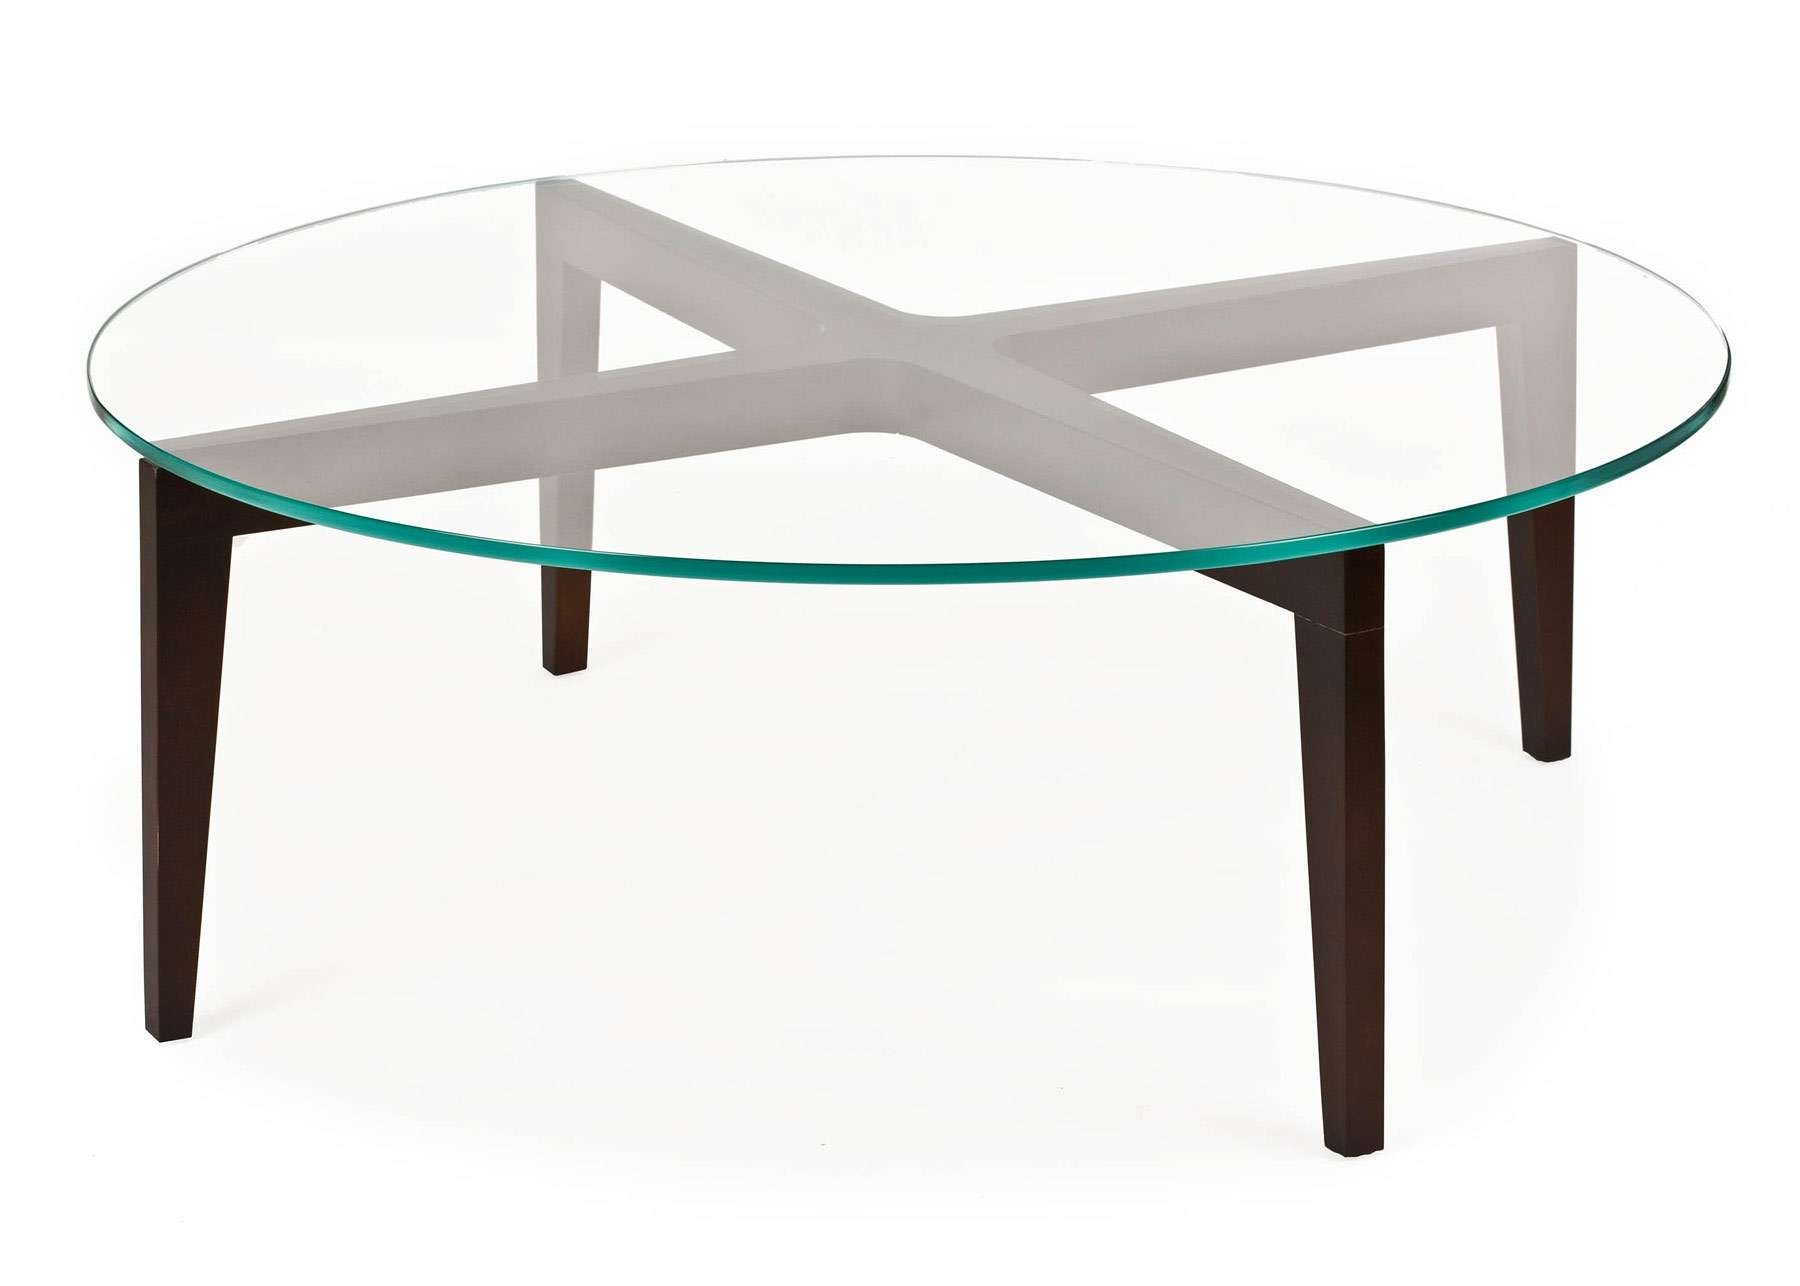 Adorable Round Glass Coffee Table Wood Base For Home Interior With Regard To Well Known Glass Circular Coffee Tables (Gallery 5 of 20)